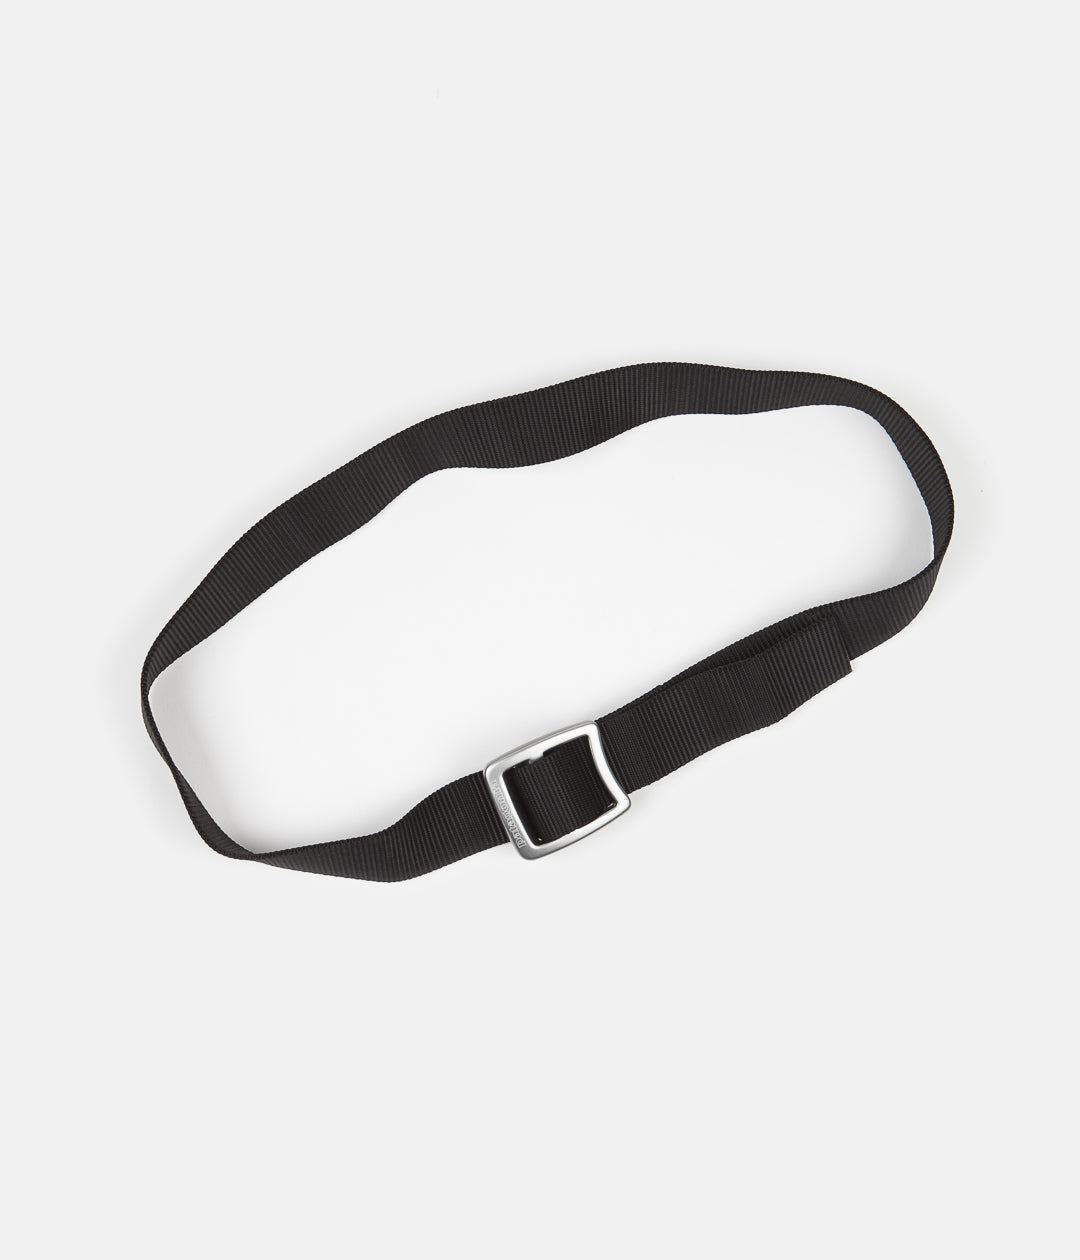 Patagonia Tech Web Belt - Black